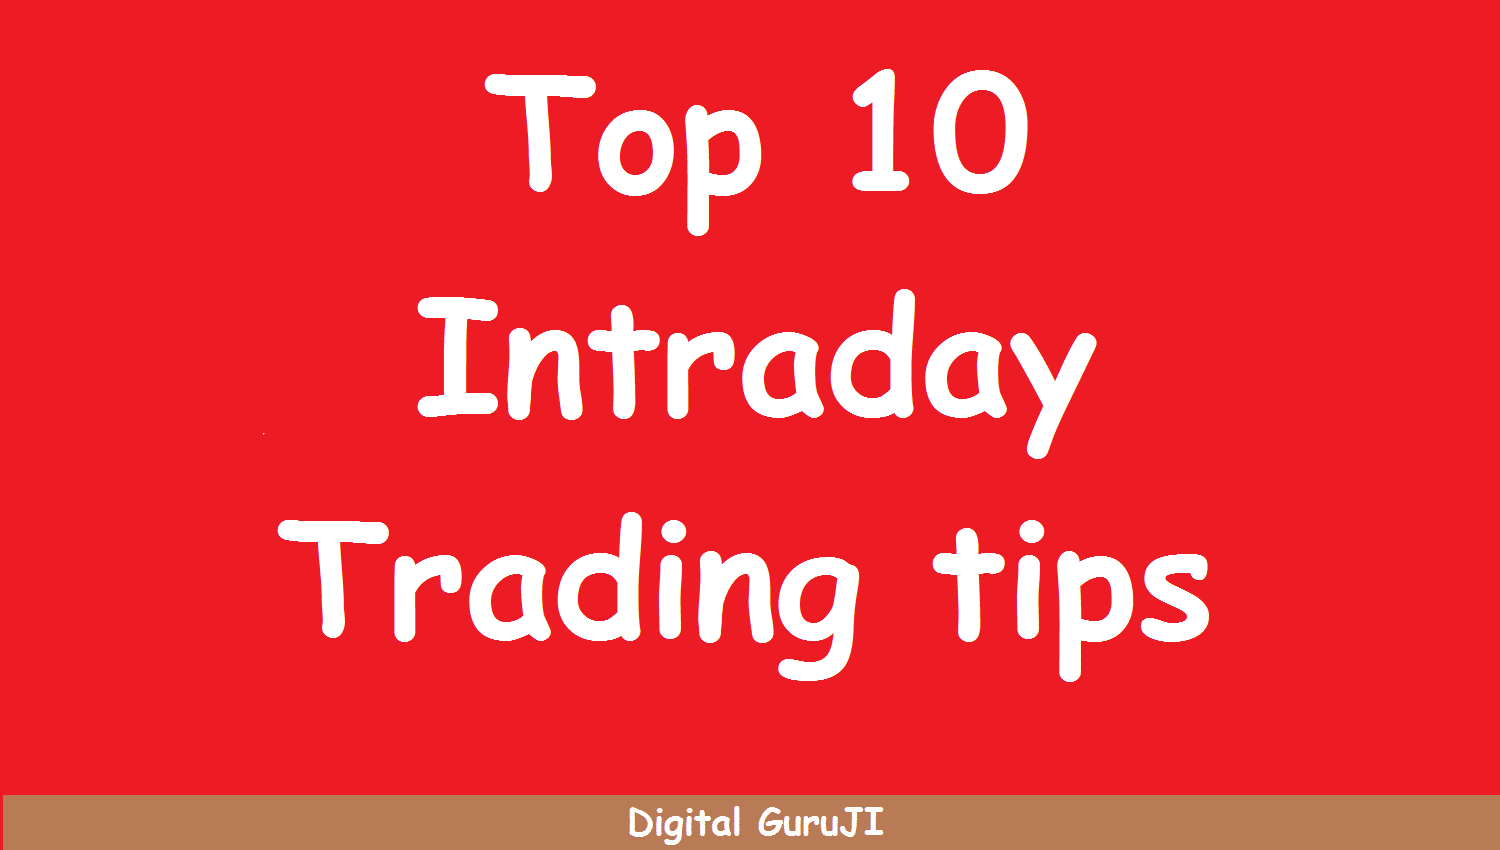 it - Top 10 Intraday Trading Tips Hindi